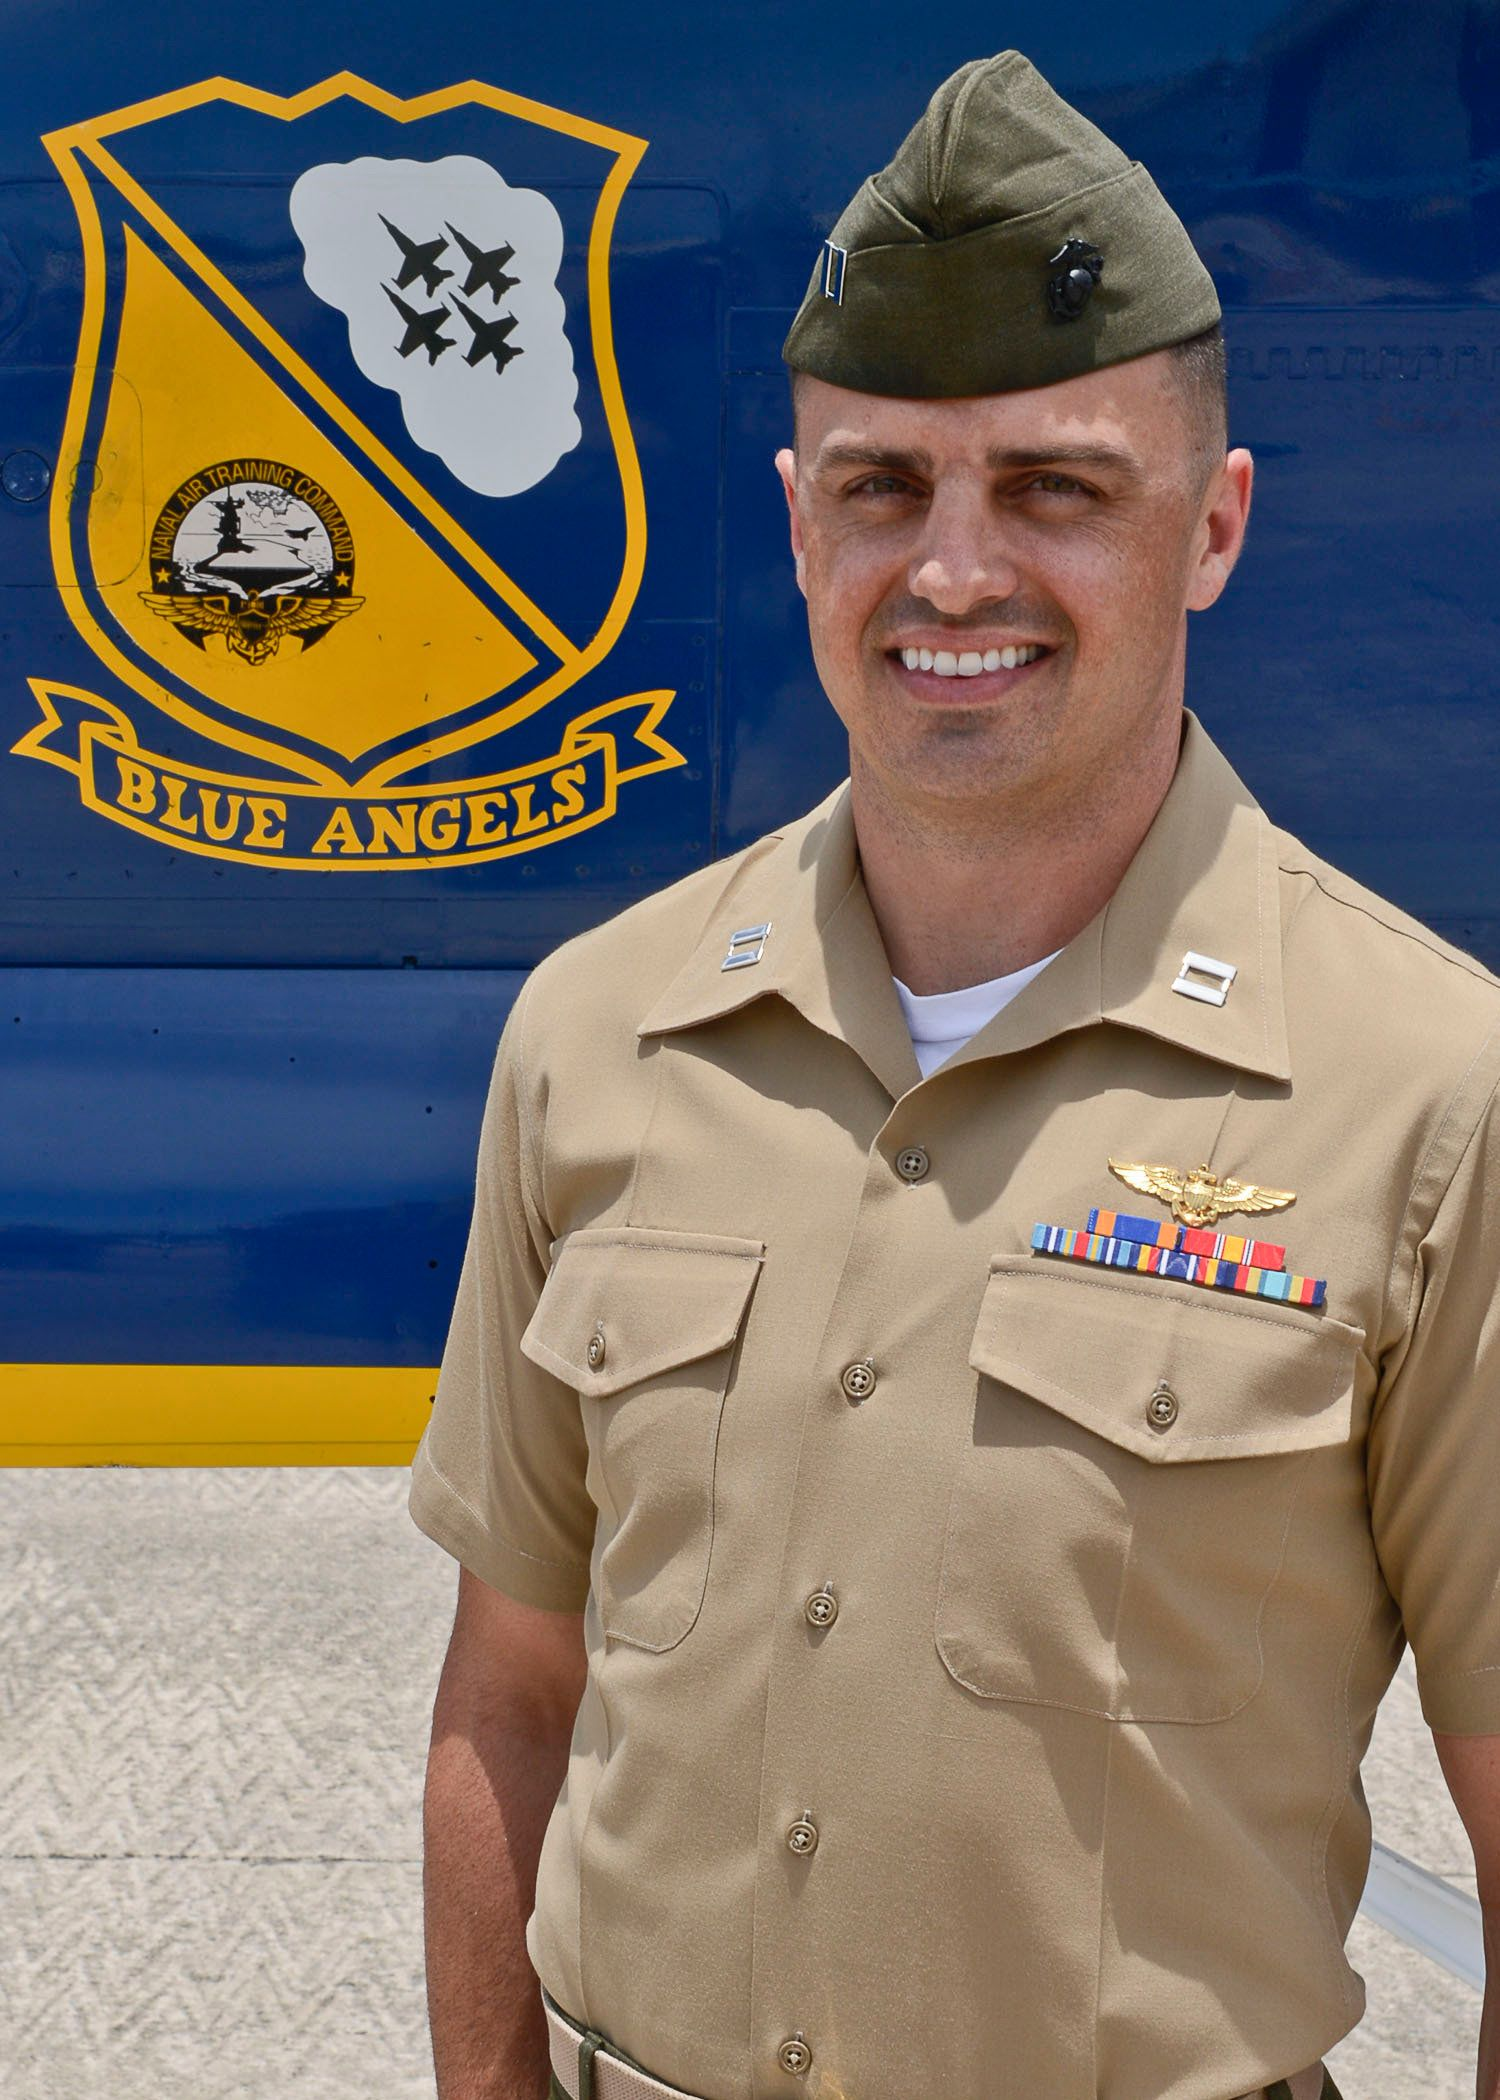 Marine Capt. Jeff Kuss, 30, of Durango, Colo., is currently assigned to Marine Fighter Attack Squadron 312 (VMFA-312) Marine Corps Air Station Beaufort, S.C.  He is a 2006 graduate of Fort Lewis College, Durango, Colo.